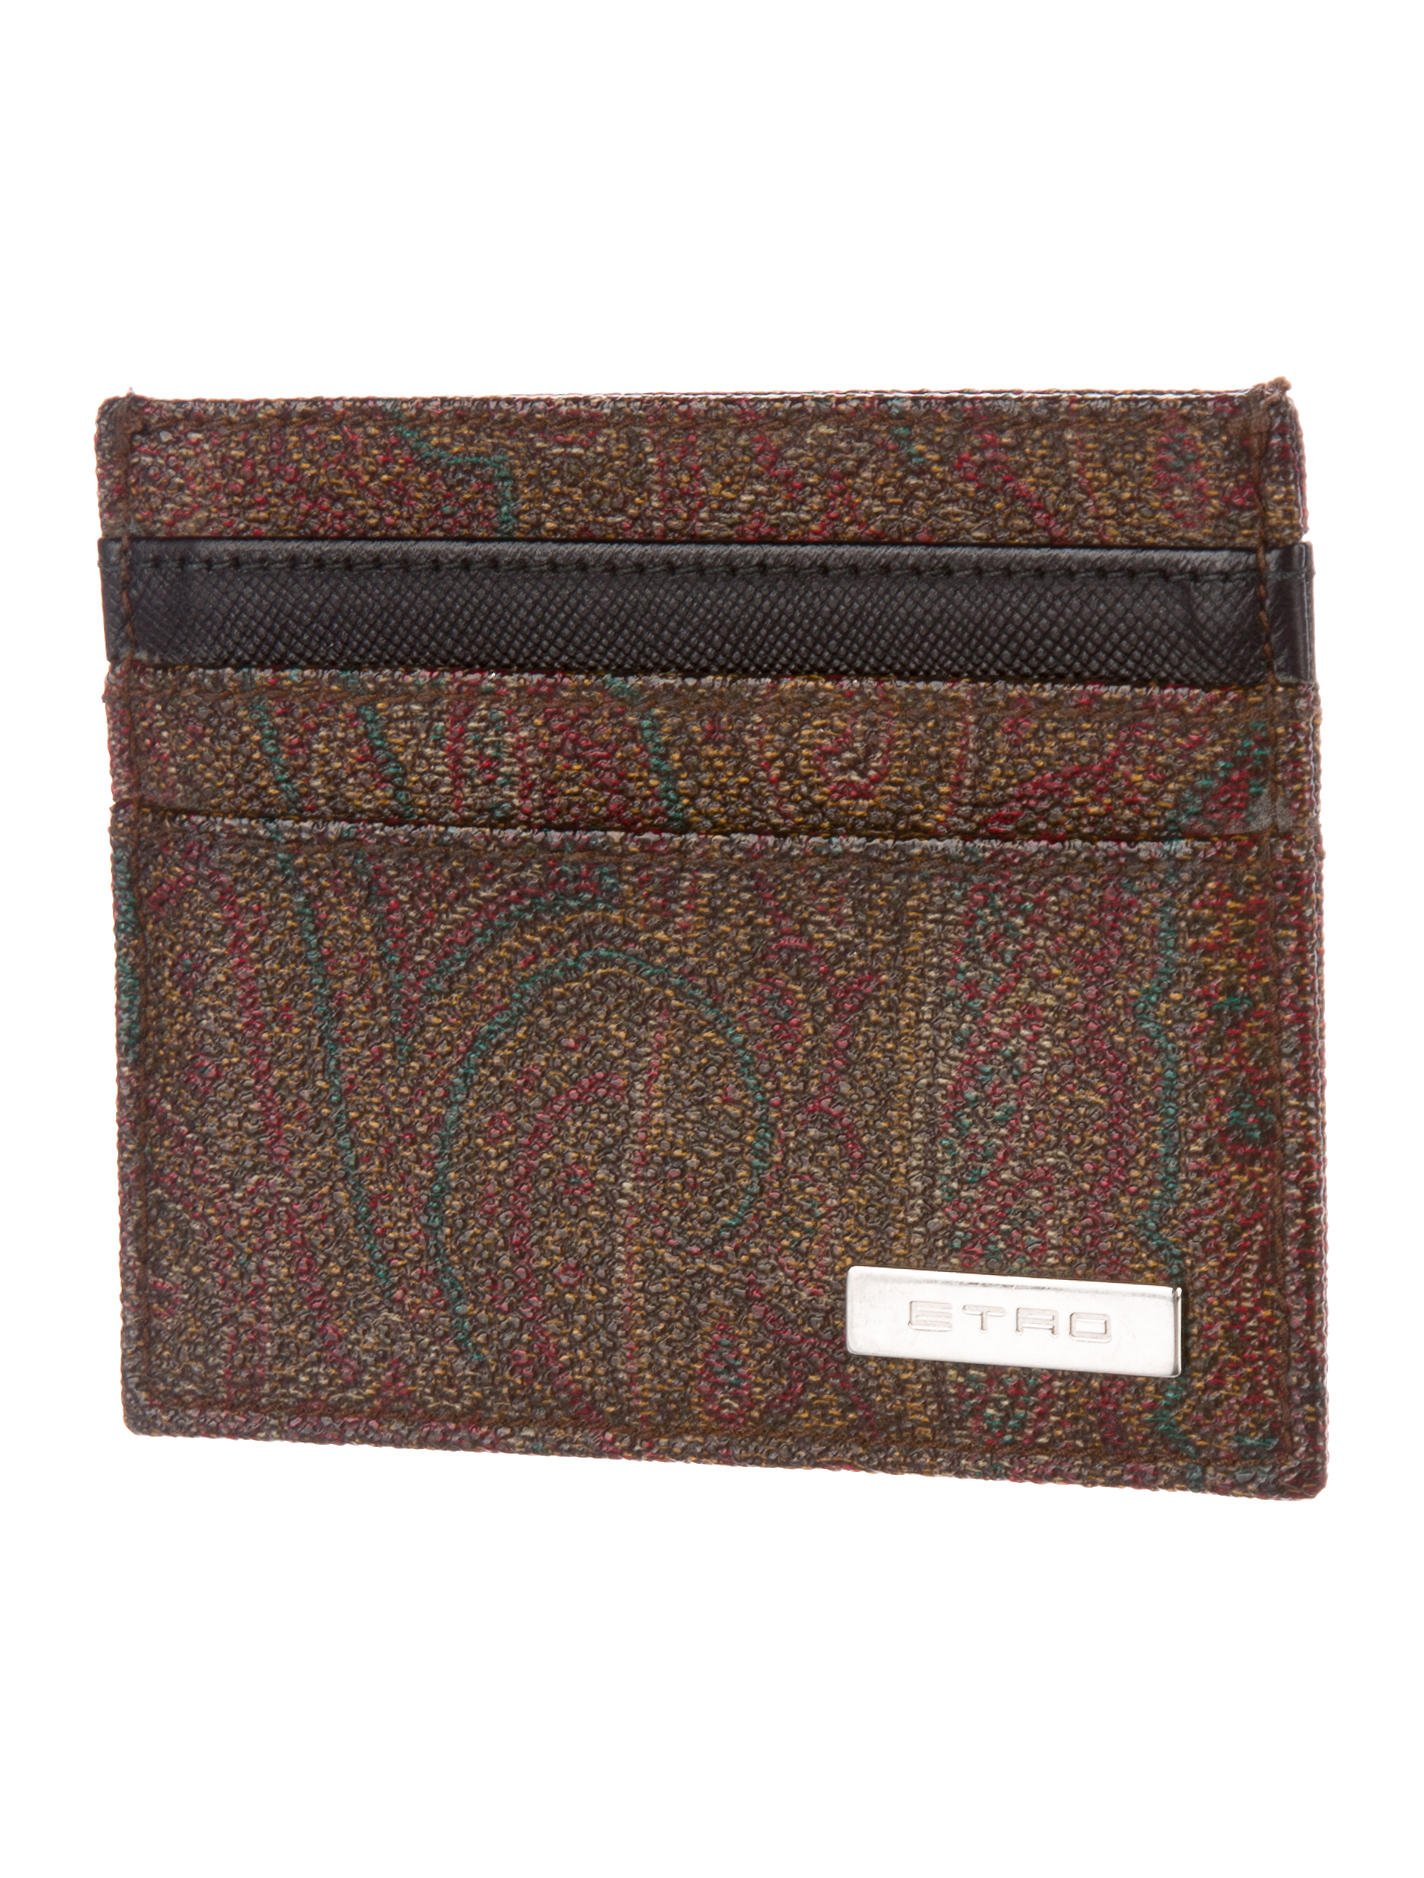 Etro Paisley Card Holder - Accessories - ETR48044 | The ...